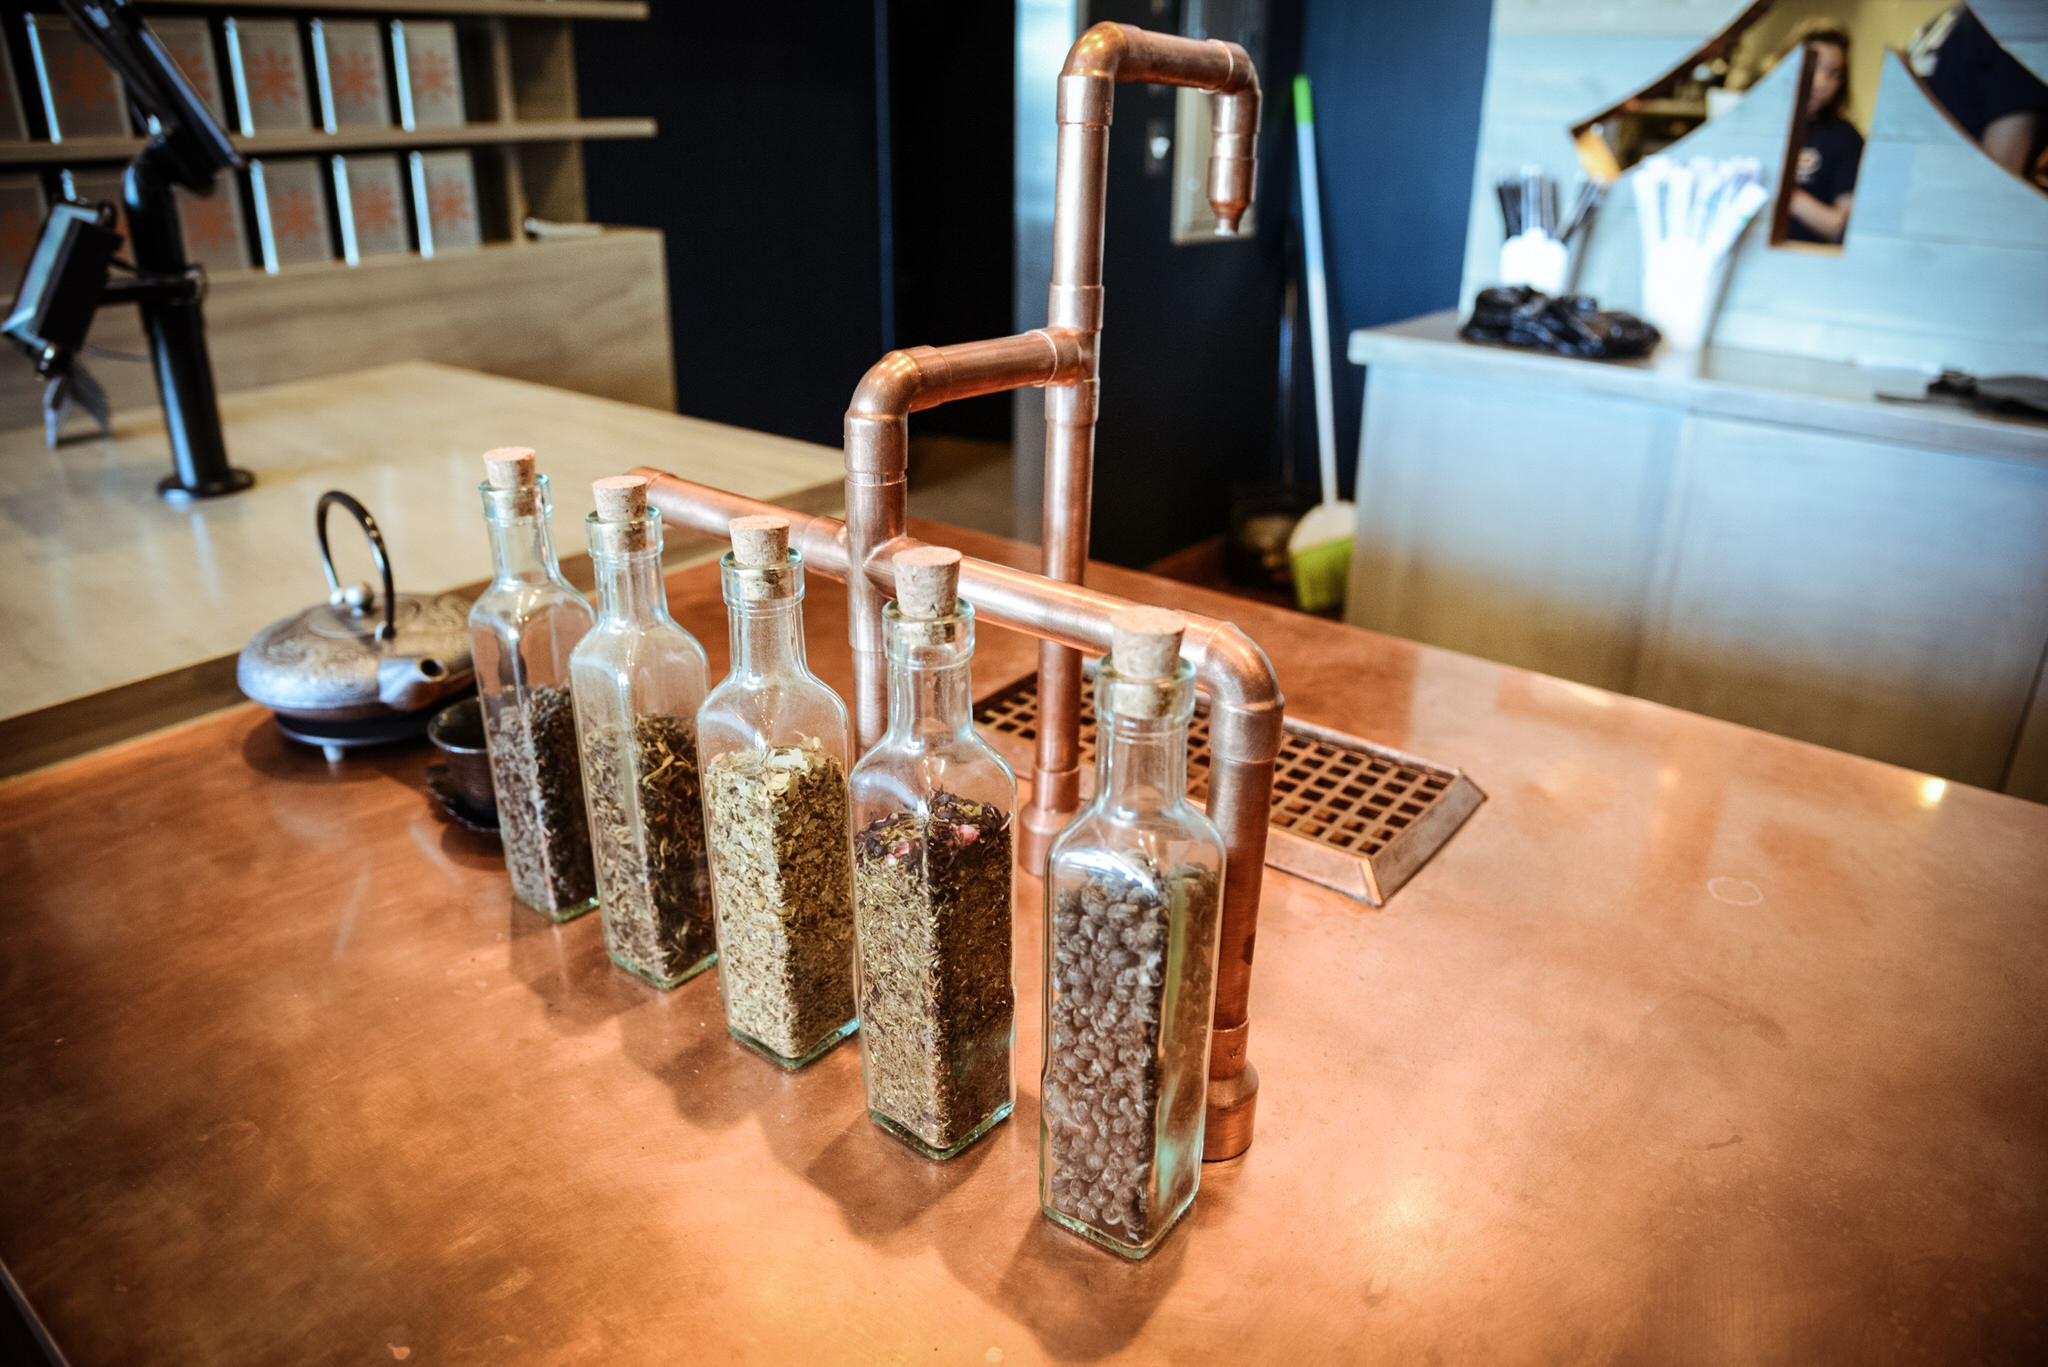 Our custom hot water system for the variety of teas on offer at Riced.